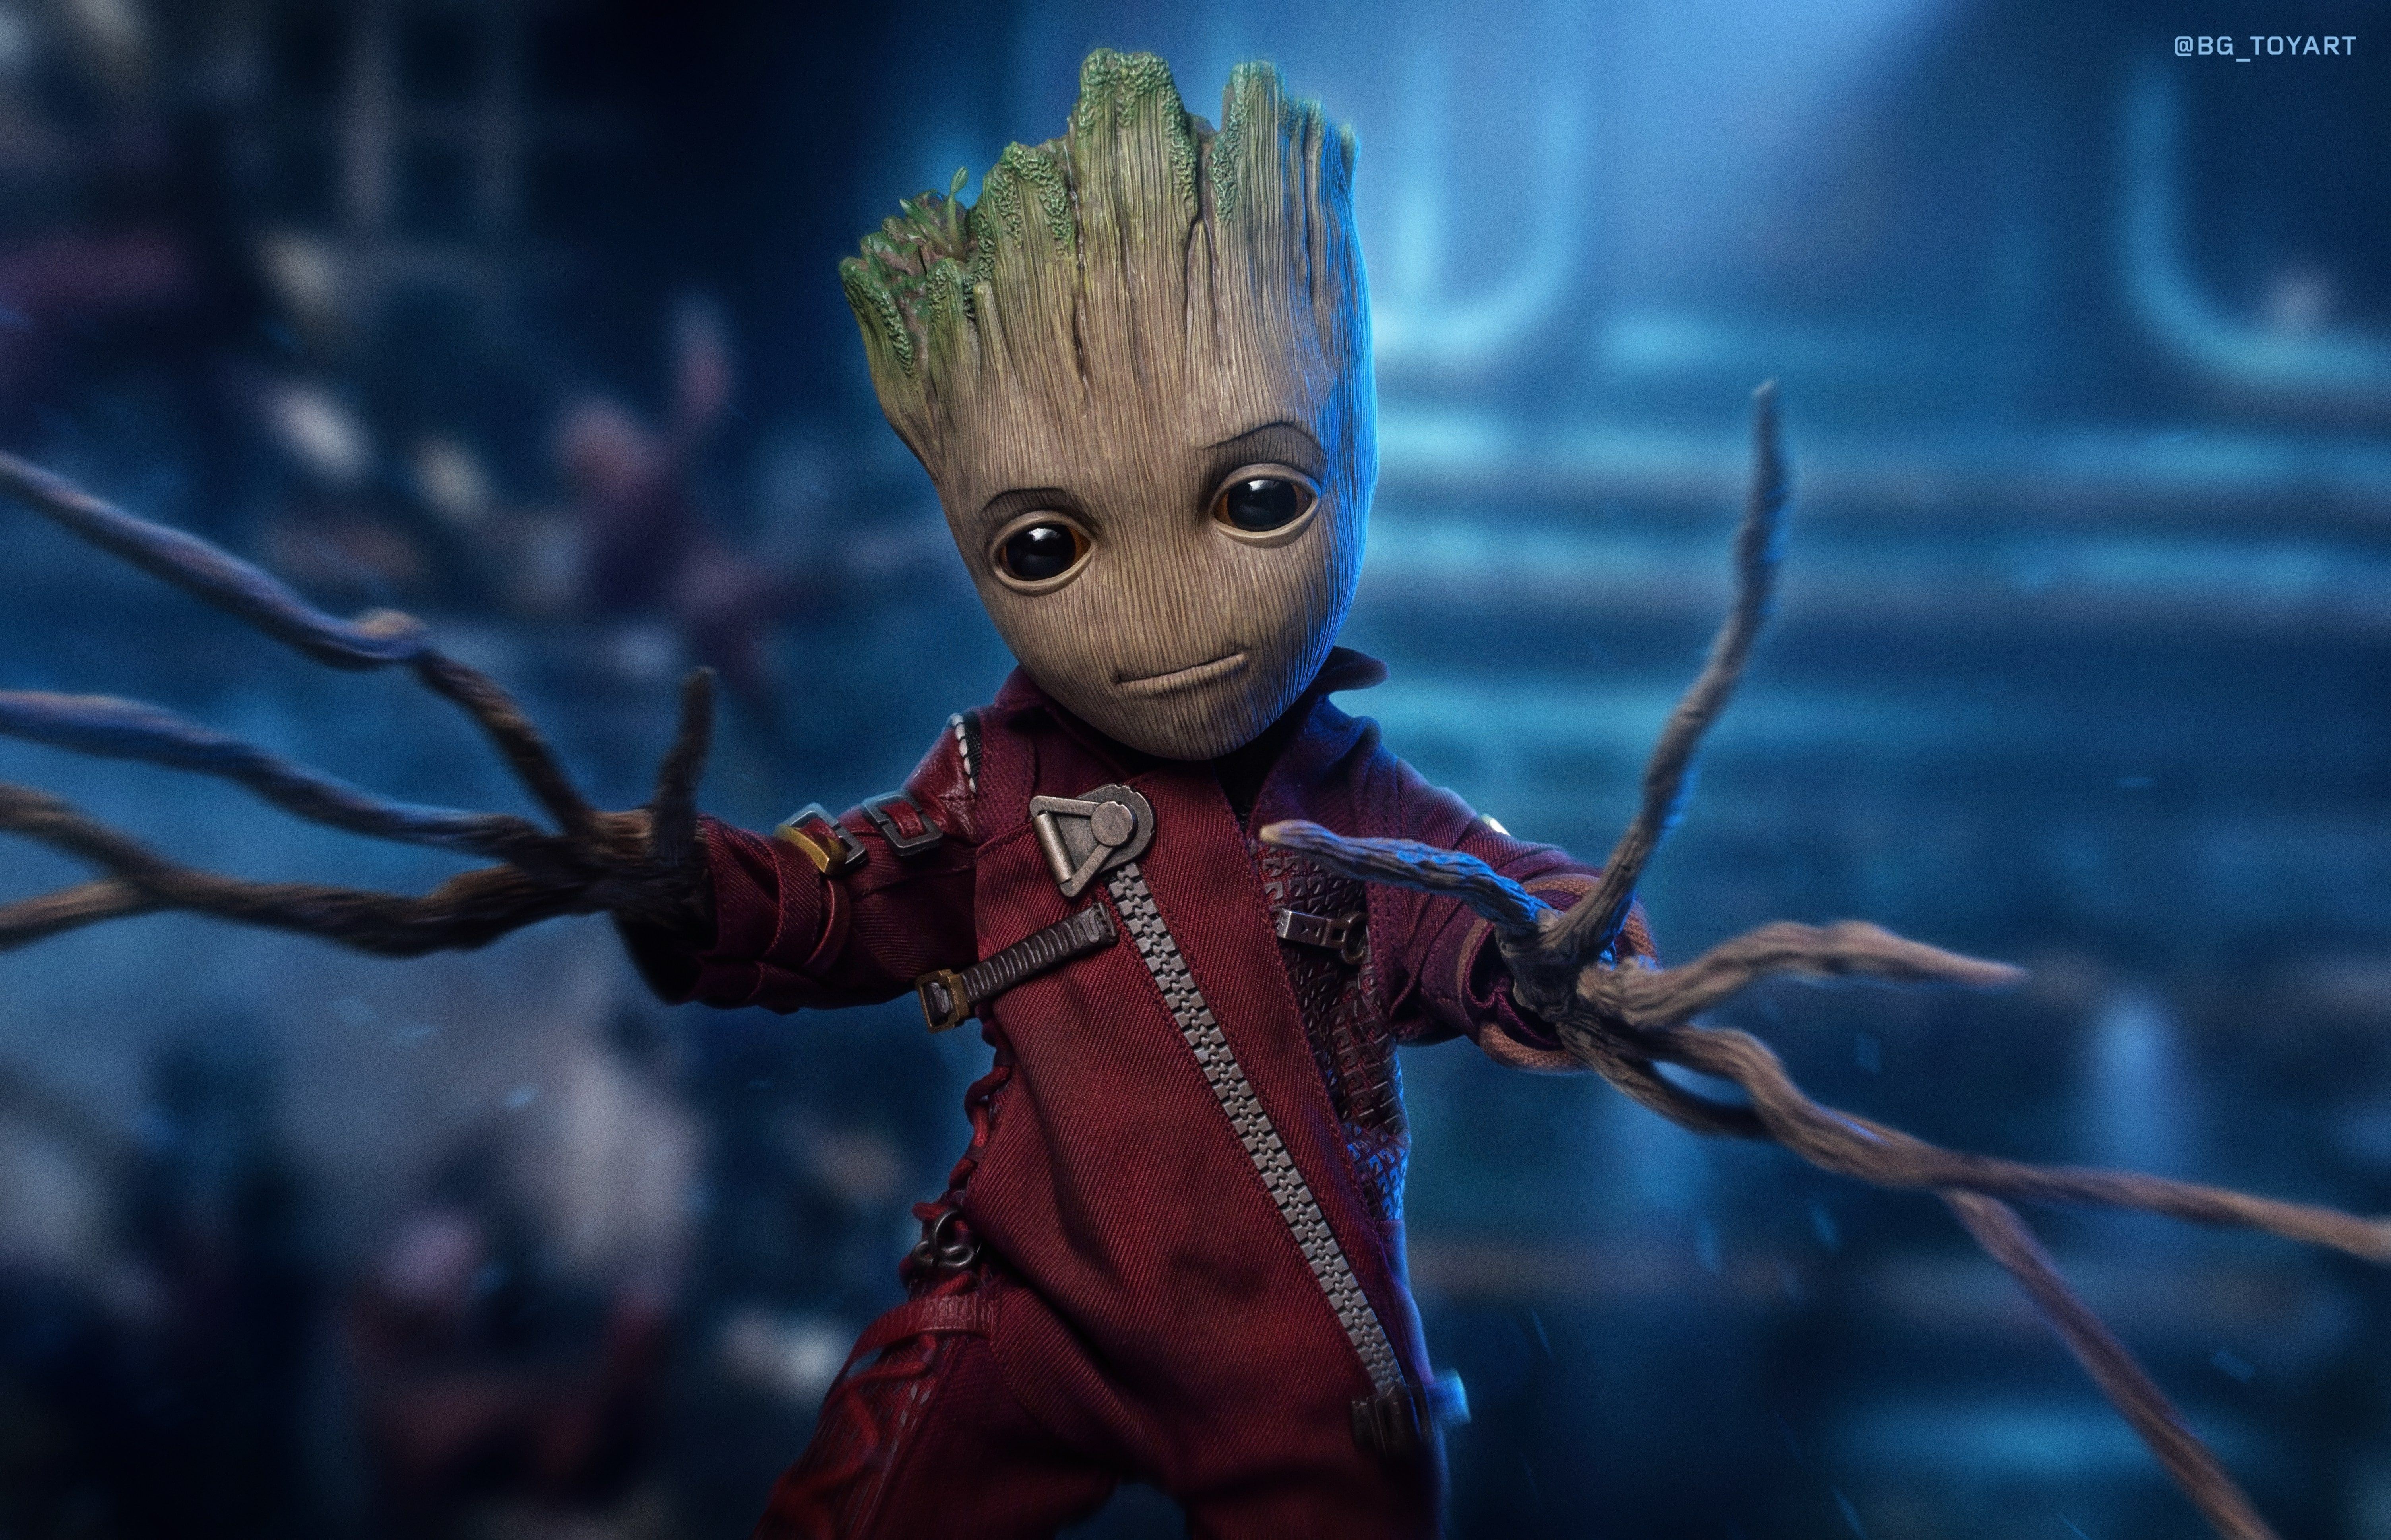 Baby Groot 5k Hd 4k Artwork Digital Art Superheroes Groot